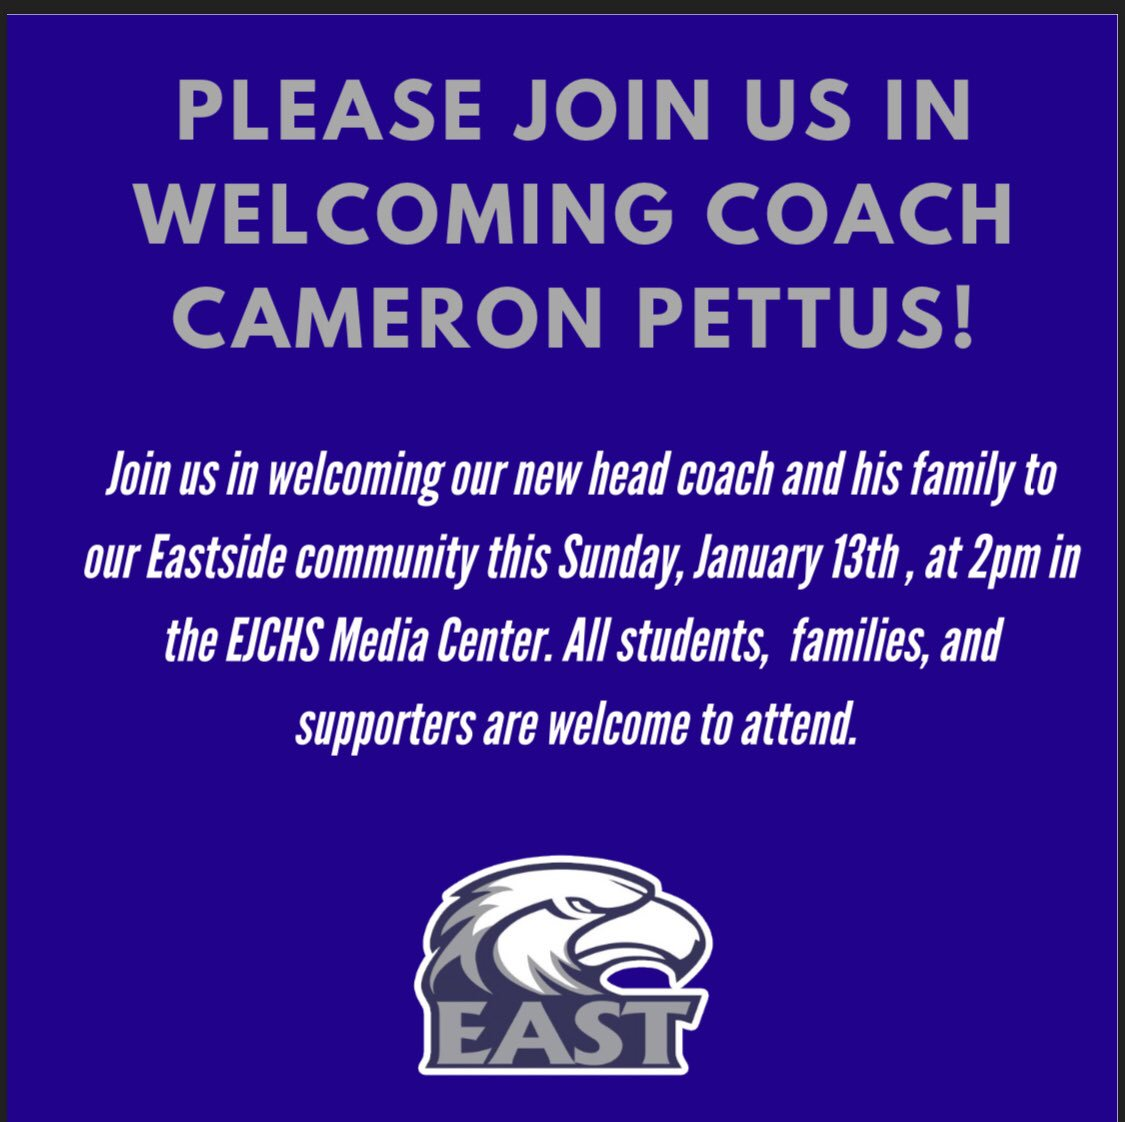 After much anticipation, we are happy to announce that Cameron Pettus will be joining the East Jackson #BluePride Community as the head football coach! <br>http://pic.twitter.com/Hq7cvIwJUt